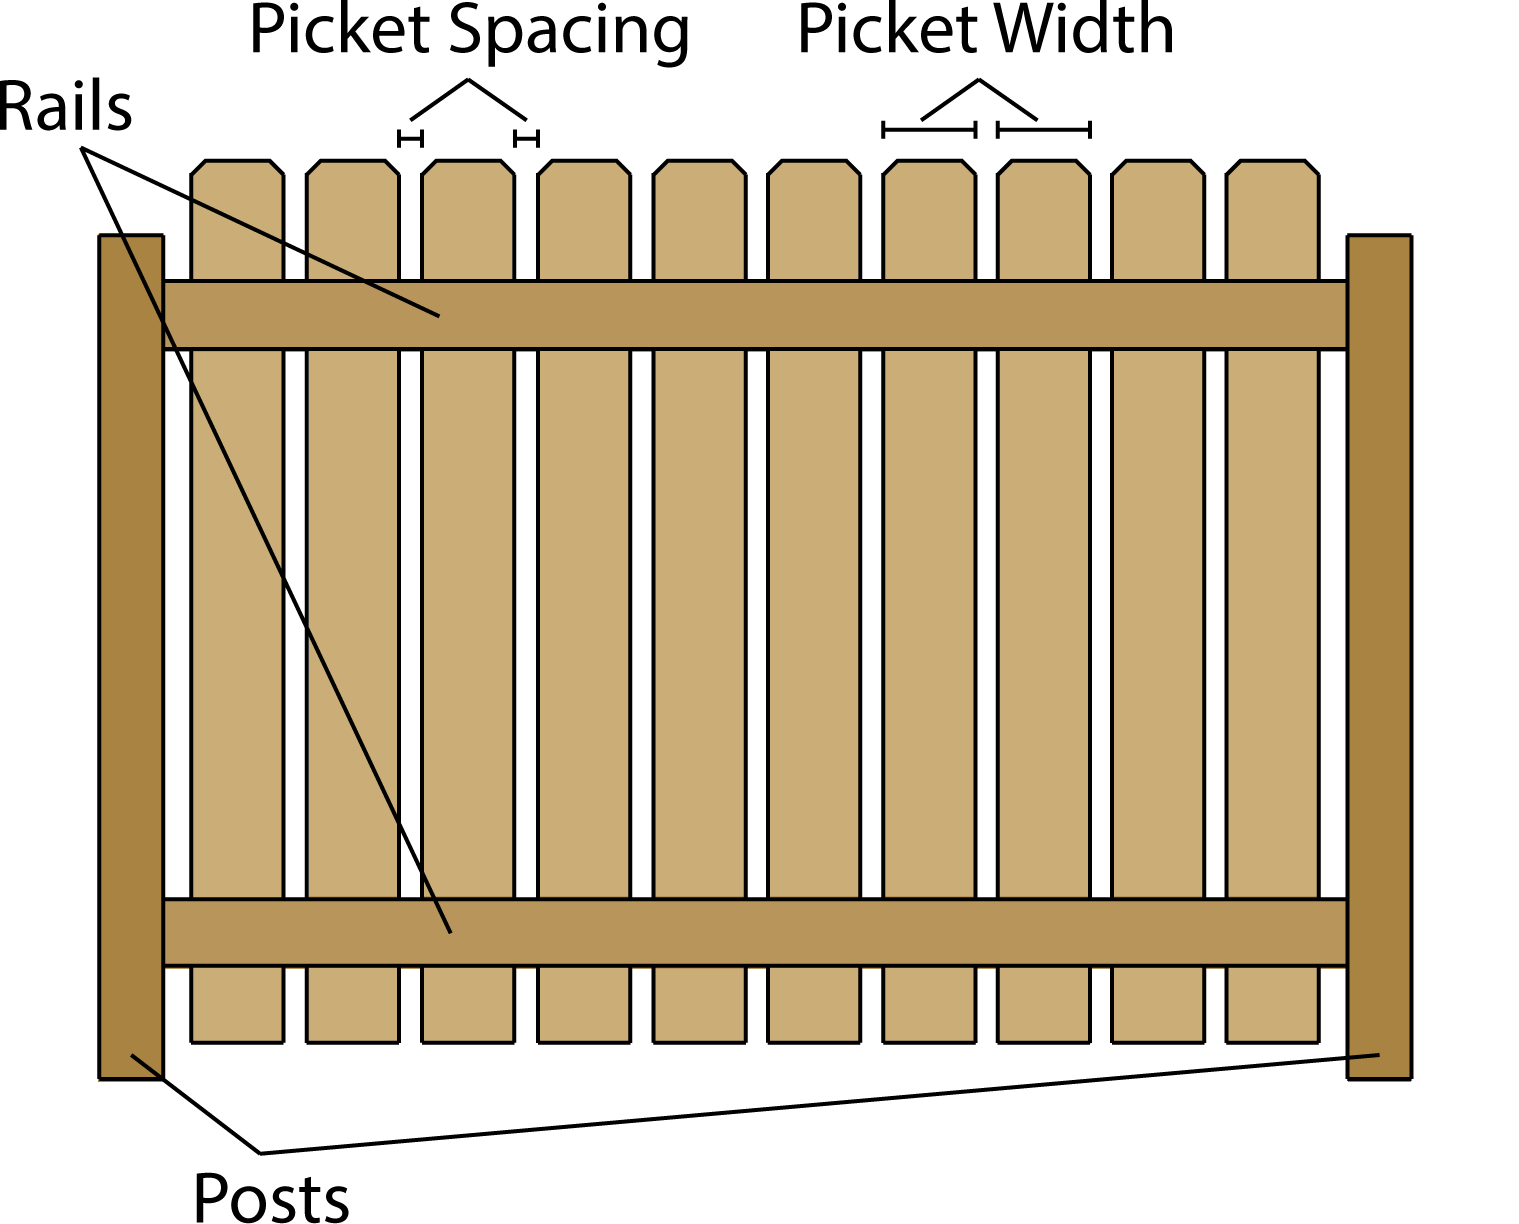 Fence Calculator Estimate Wood Fencing Materials And Post Centers - Fence estimate template